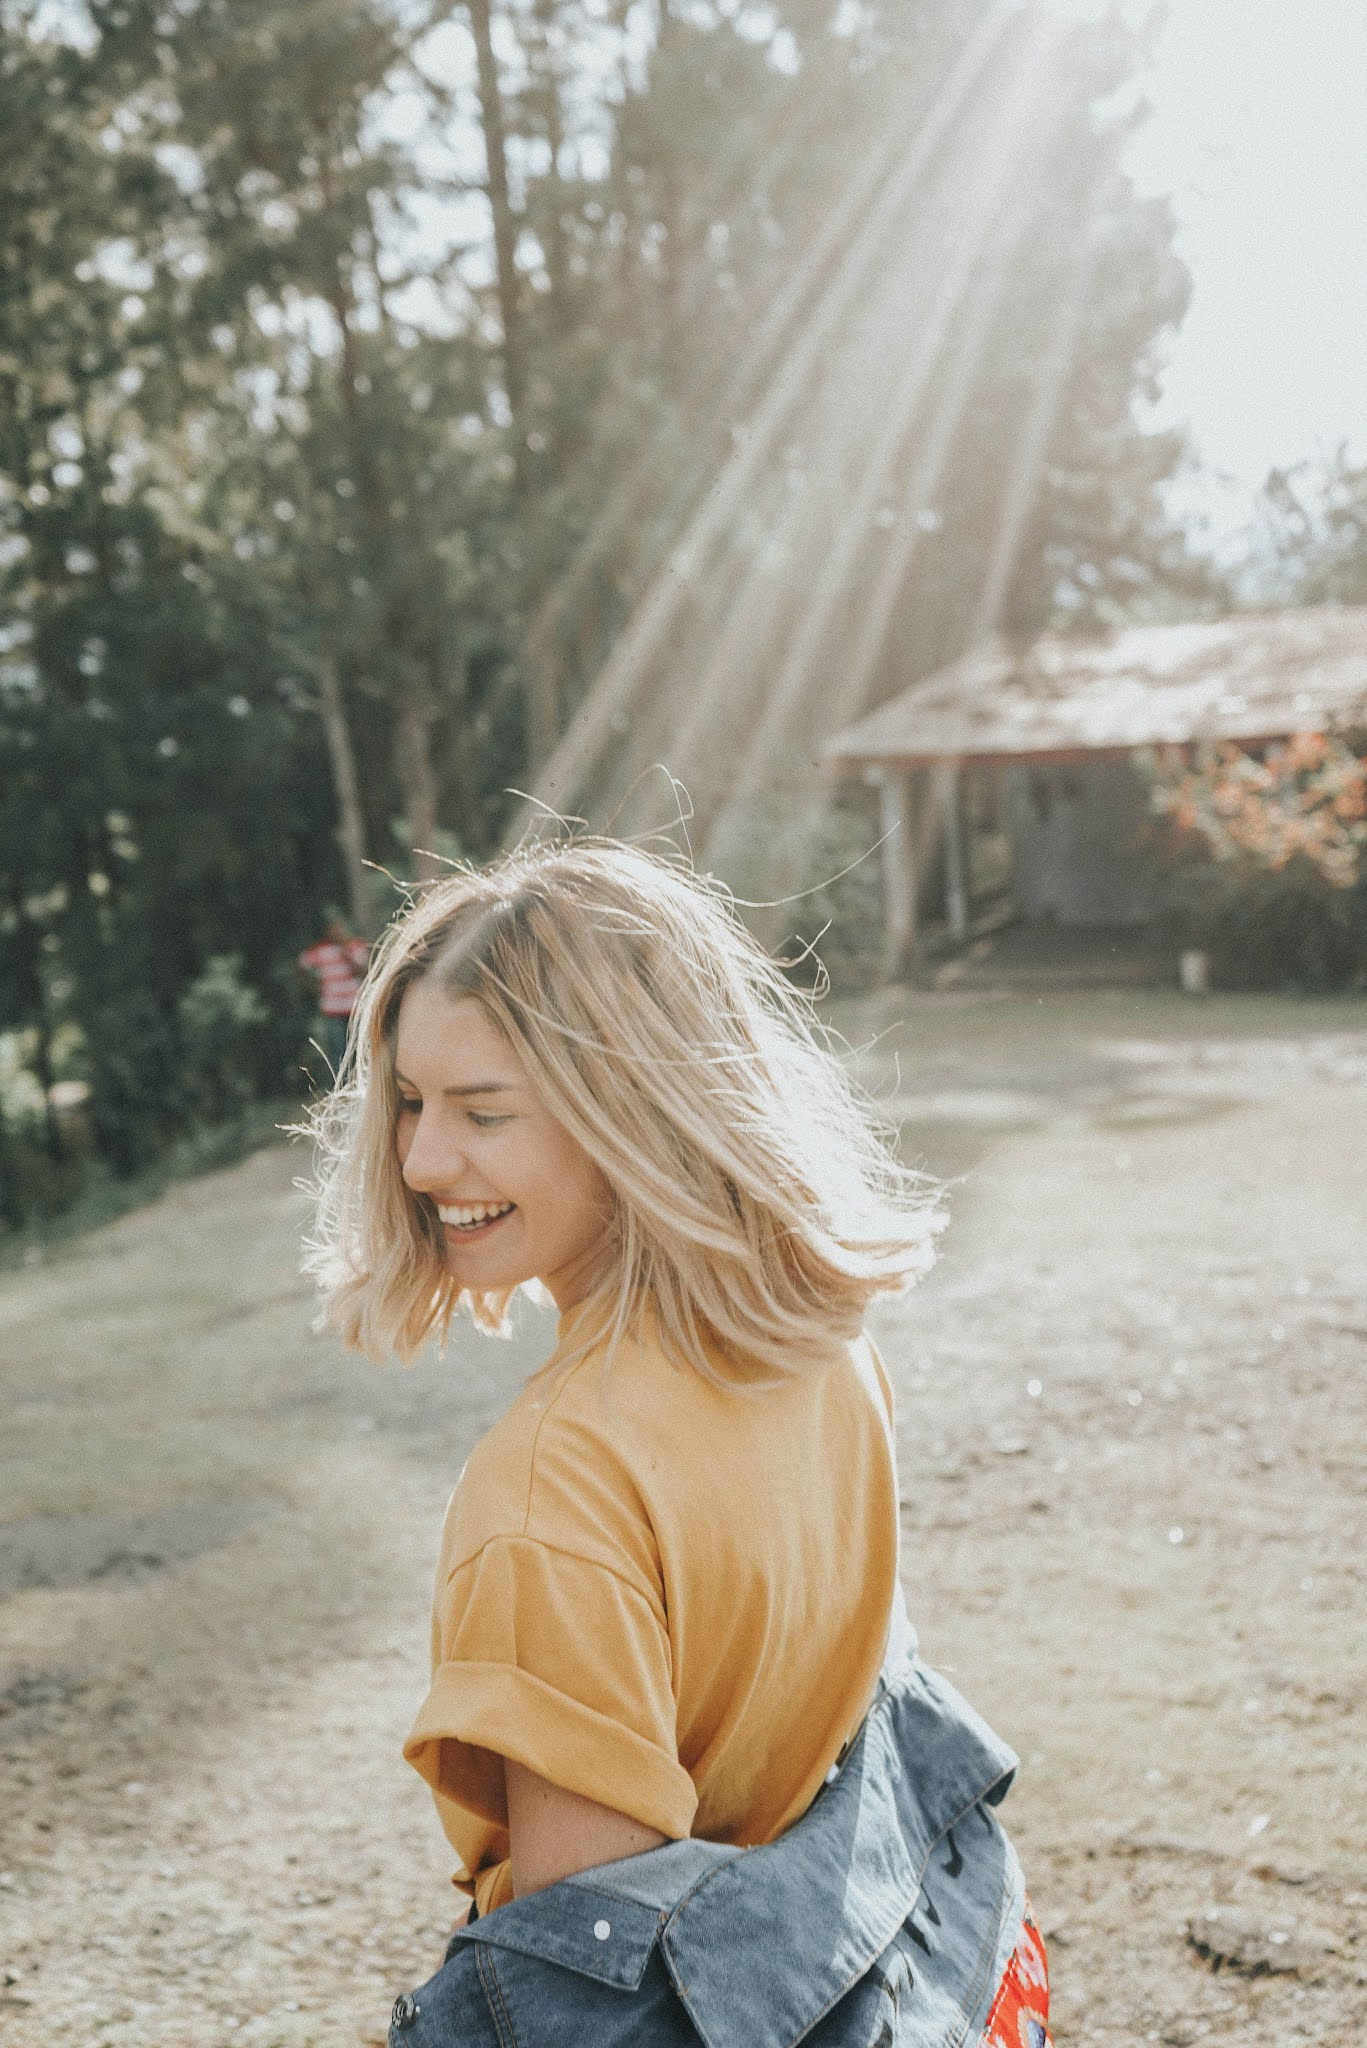 9 Things You Should Give Up Completely to Be Happy